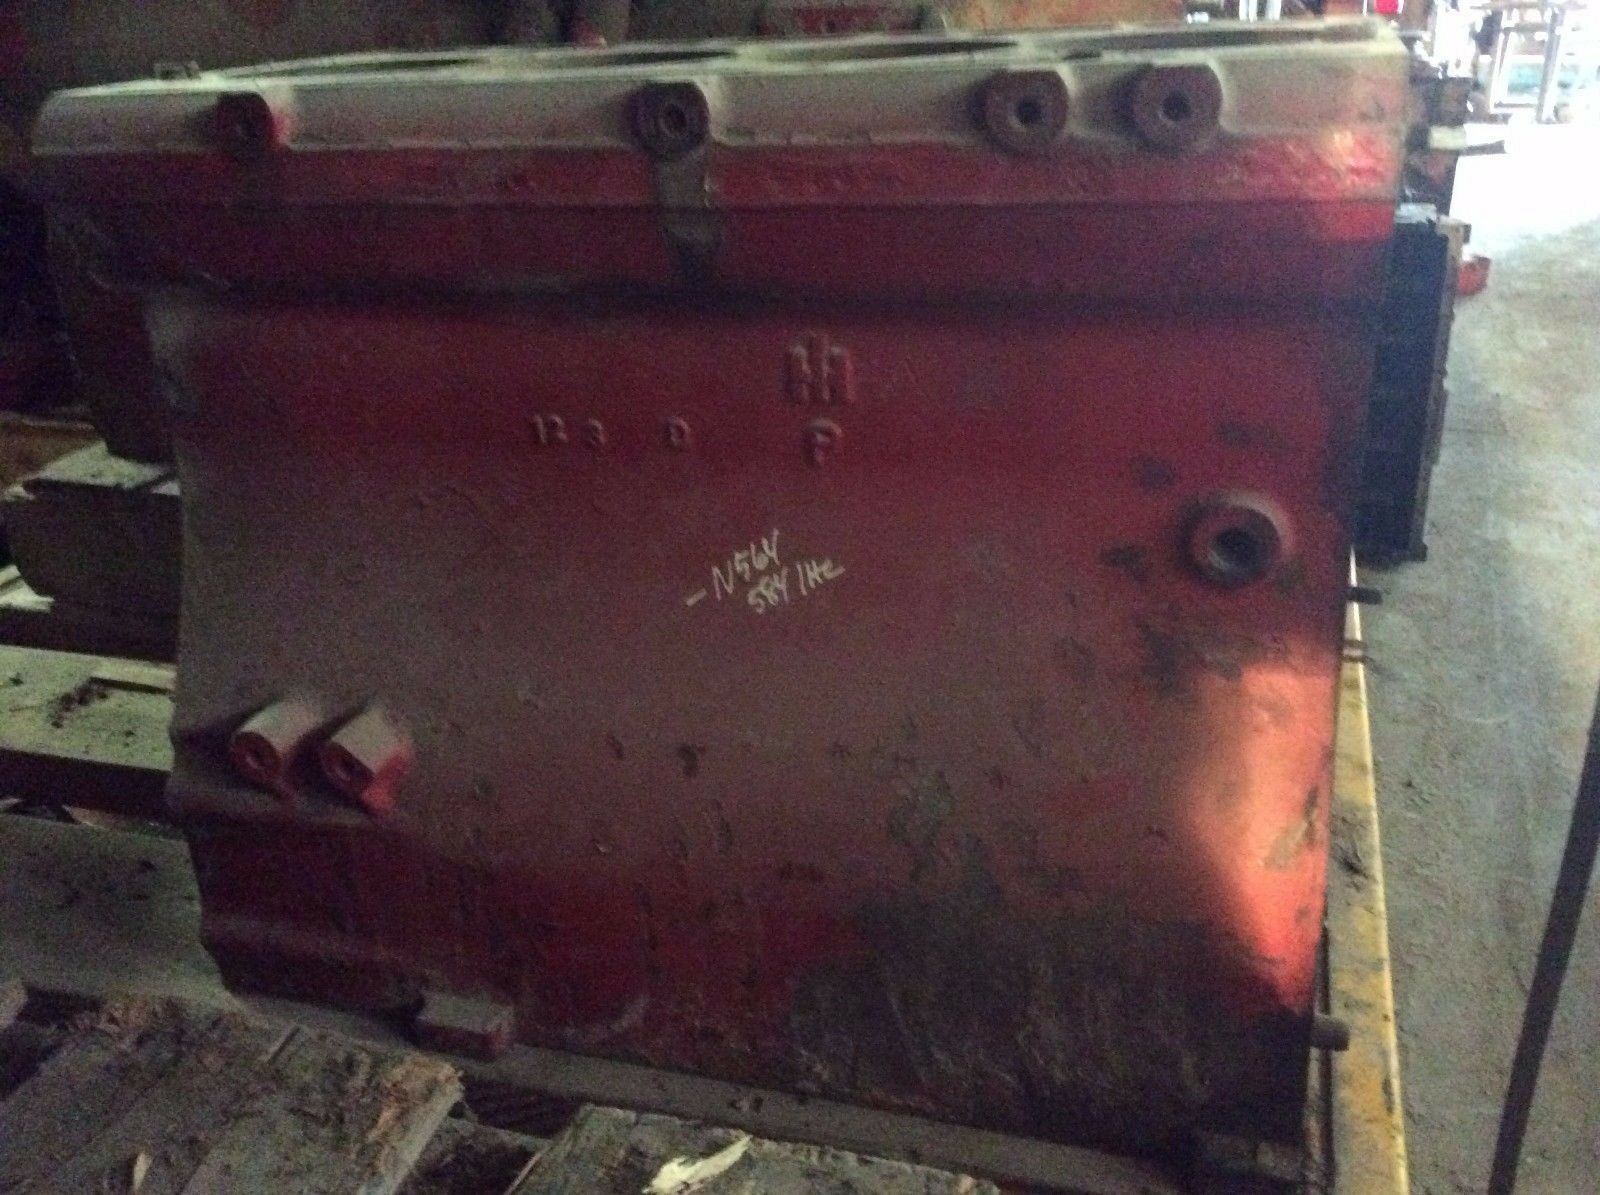 International IHC 584 D206 Block, part# 3144742R93